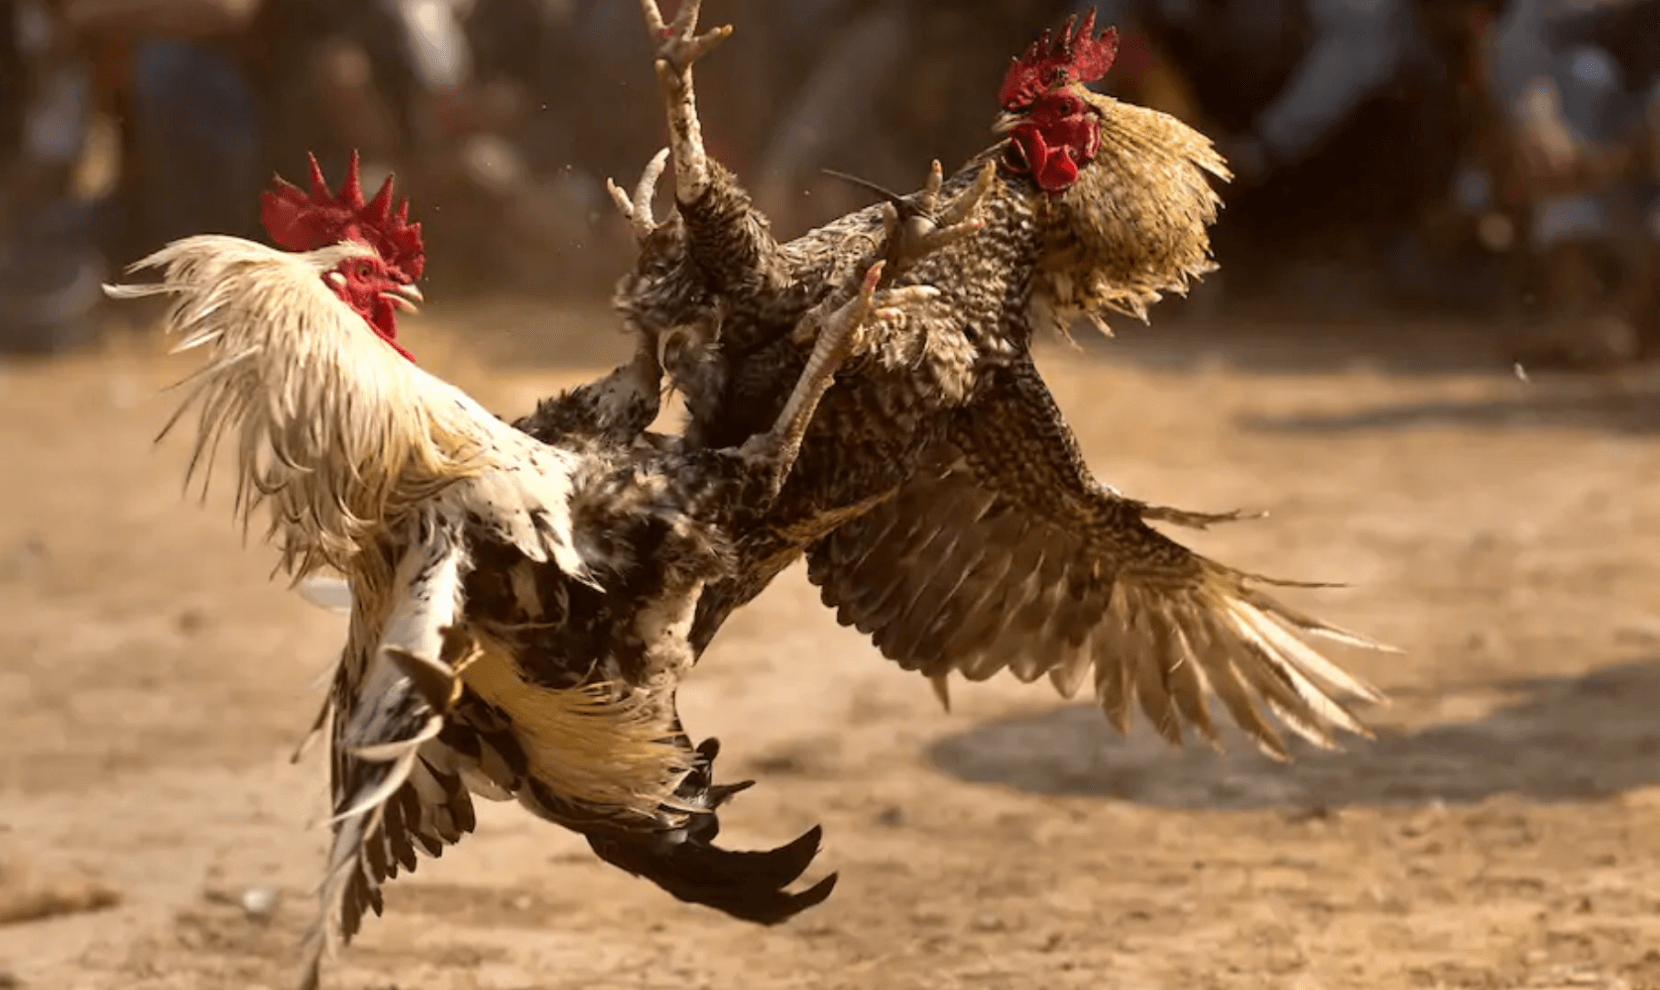 a-billion-dollar-market-cockfighting-the-philippines-national-pastime-to-be-taxed